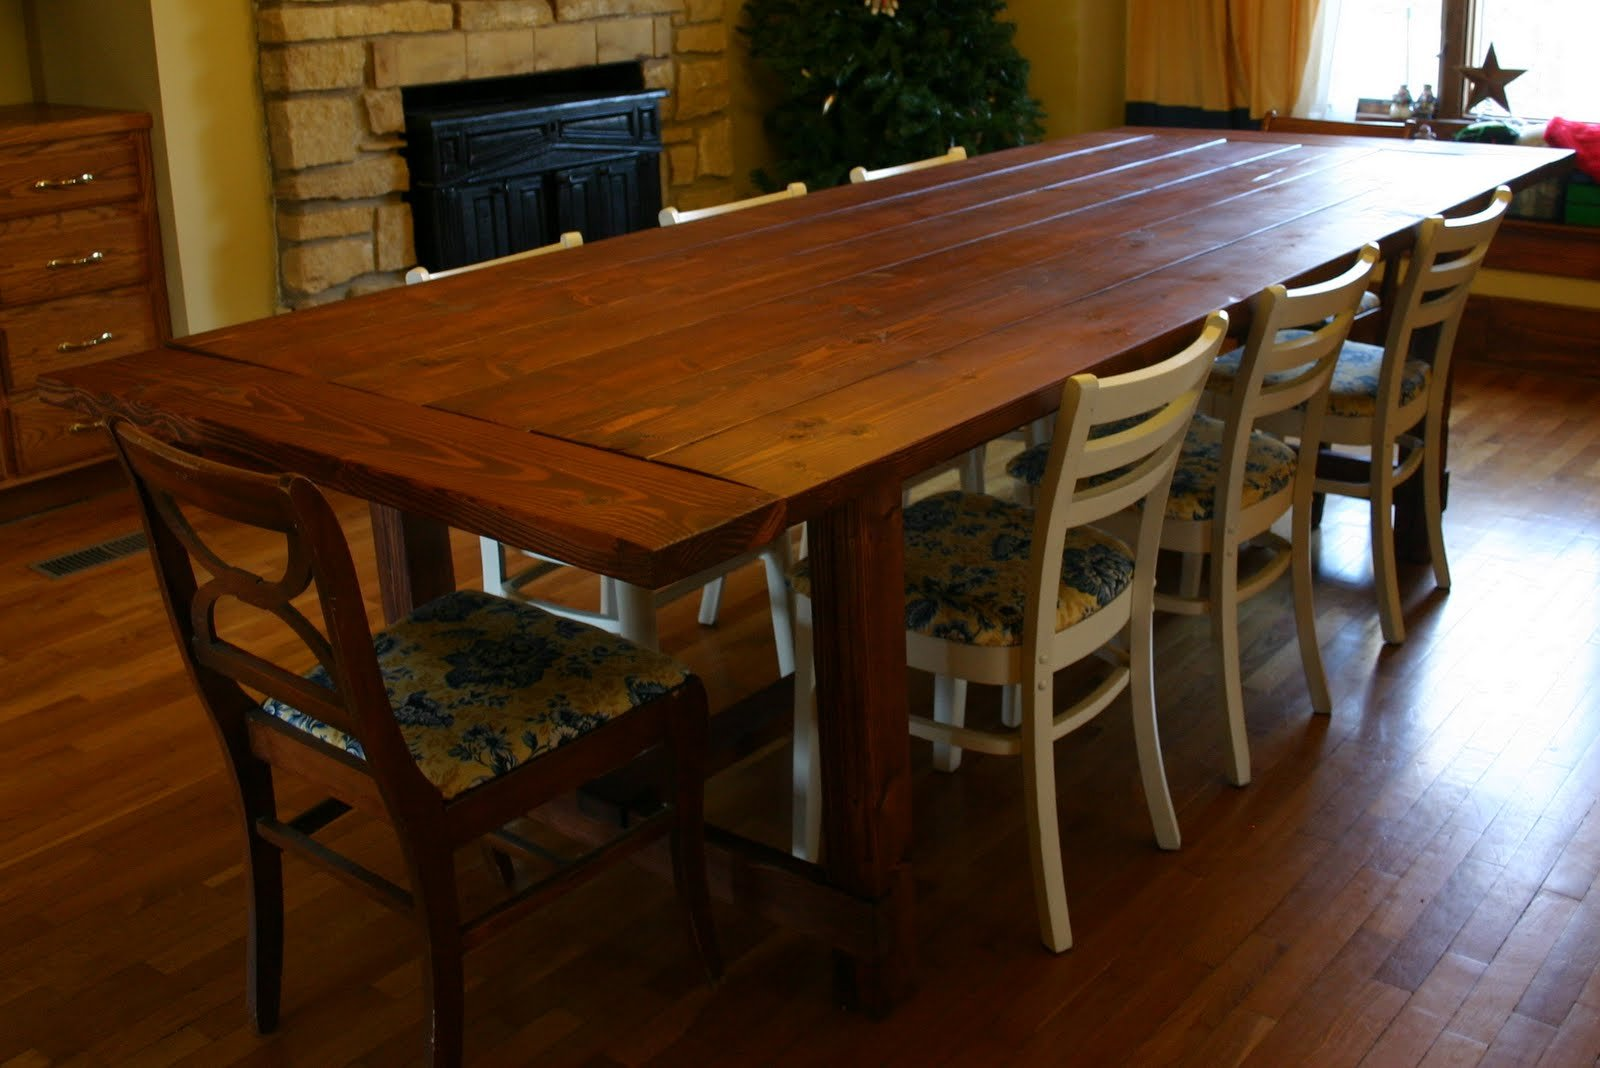 farmhouse rustic dining table rustic kitchen table Build farmhouse dining table